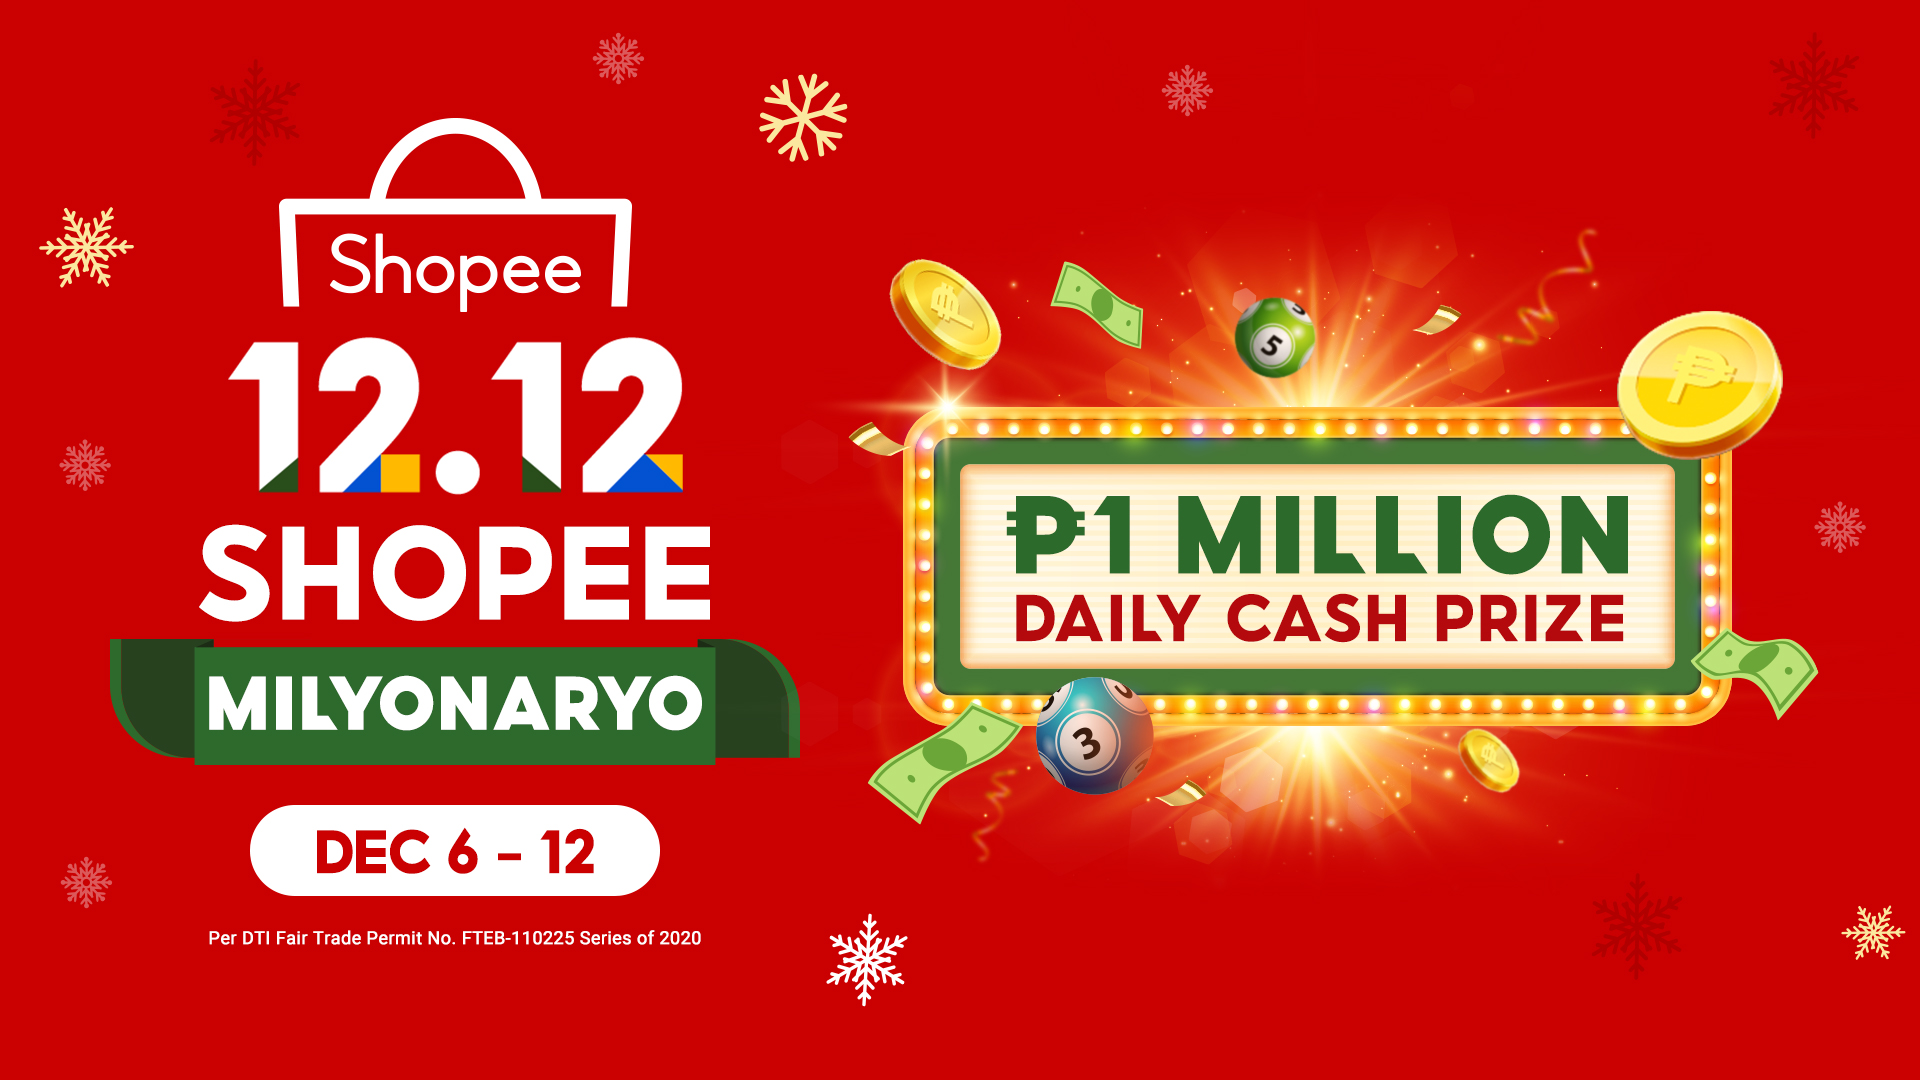 Shopee relaunches Shopee Milyonaryo in time for the 12.12 Big Christmas Sale